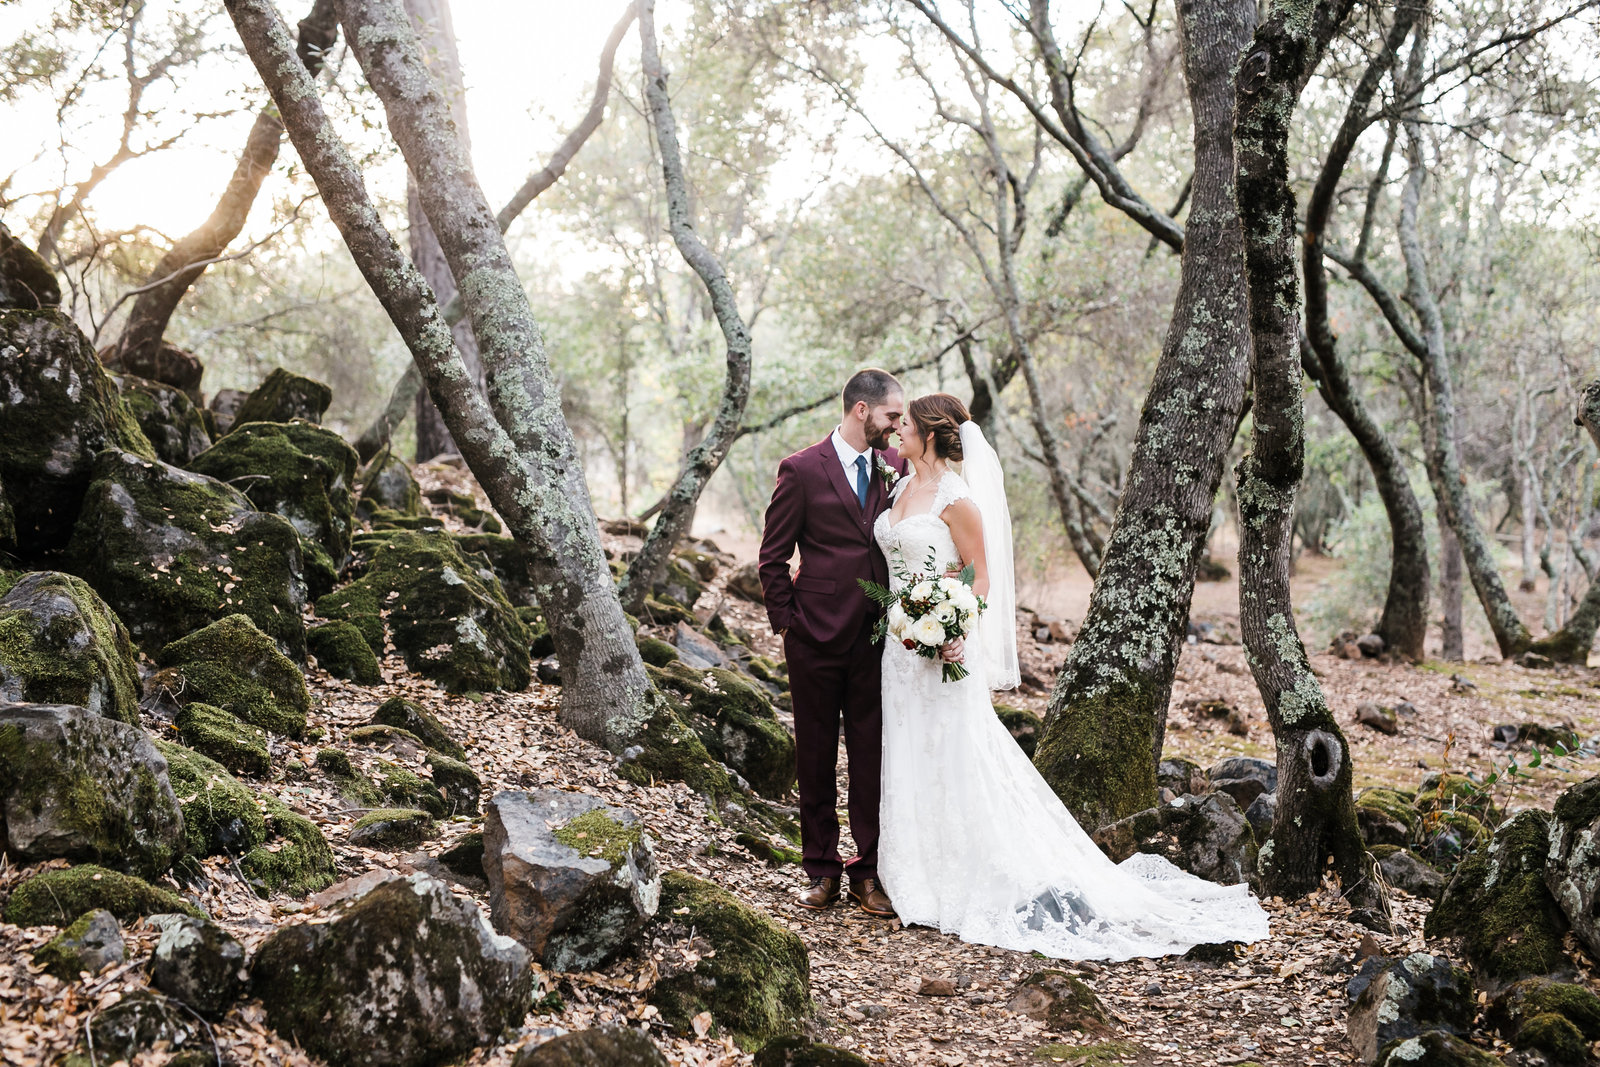 Ryan Greenleaf_Northern California Wedding Photographer_097Website_2017_Wedding70